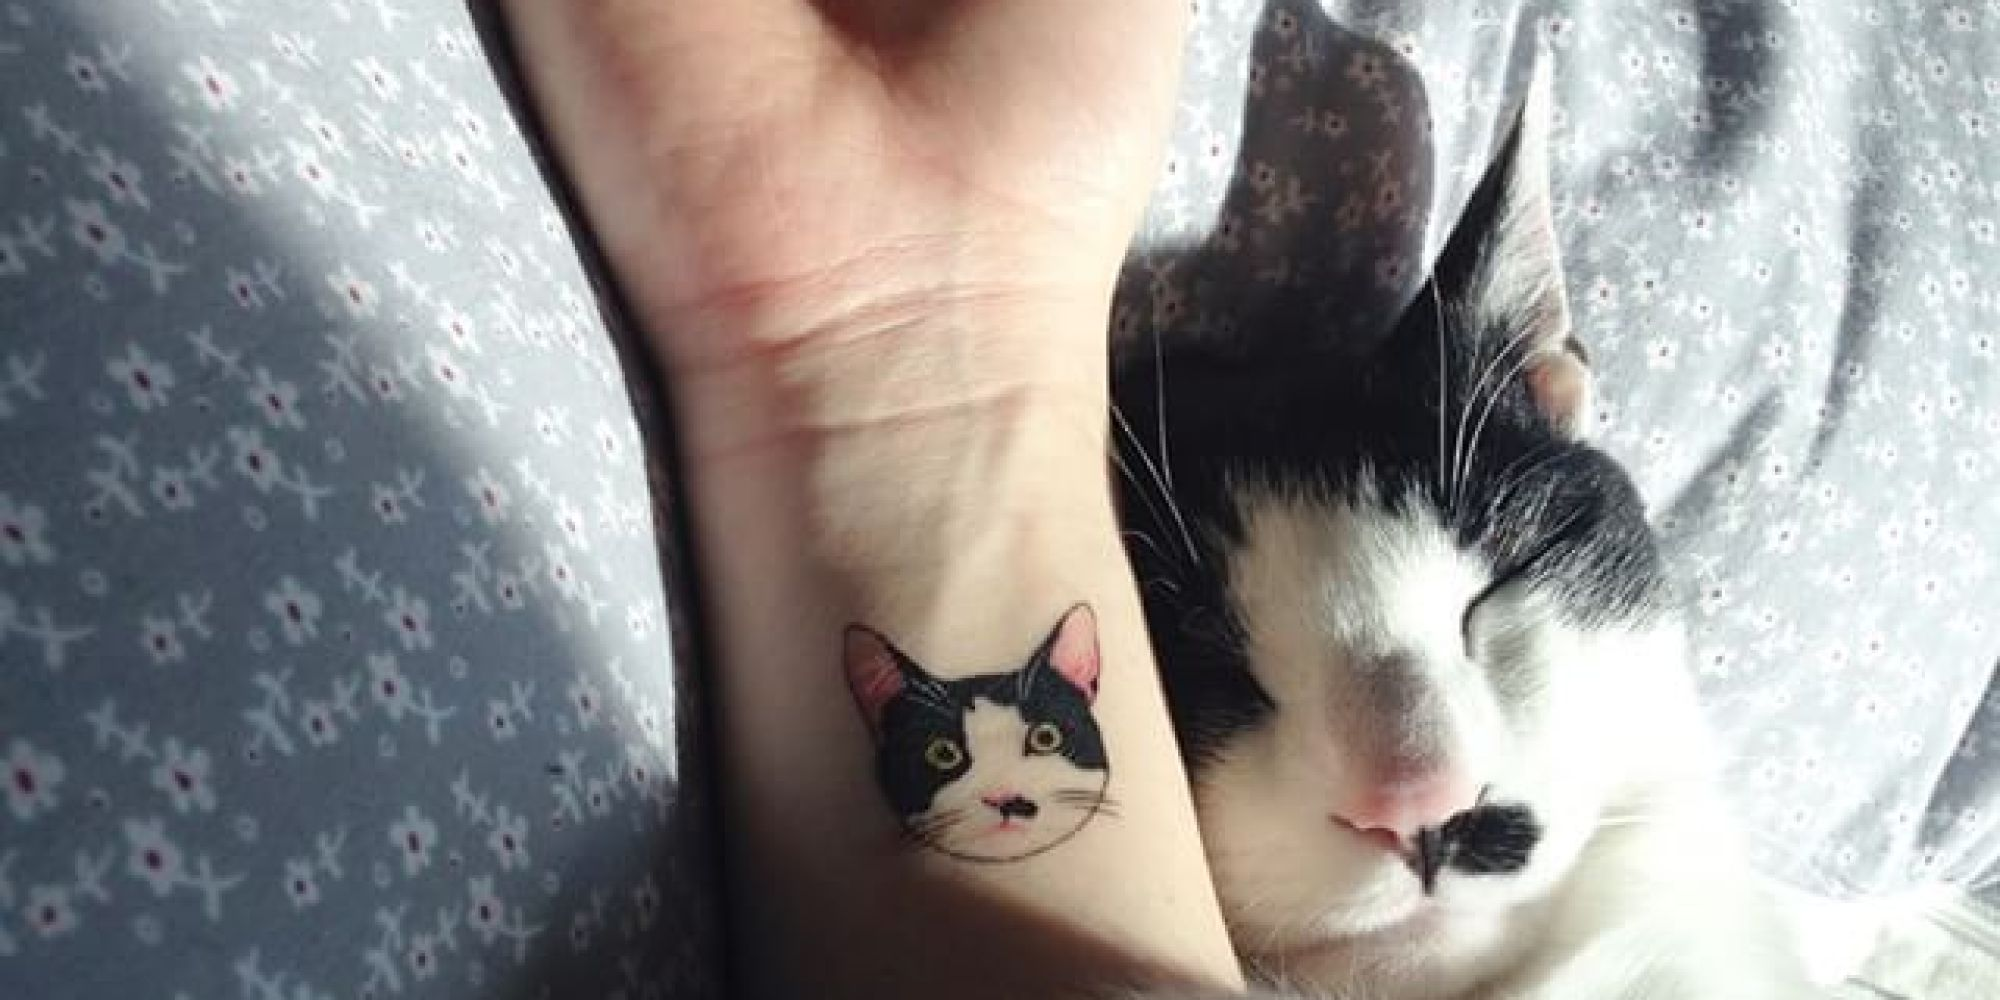 The model with a cat tattoo.